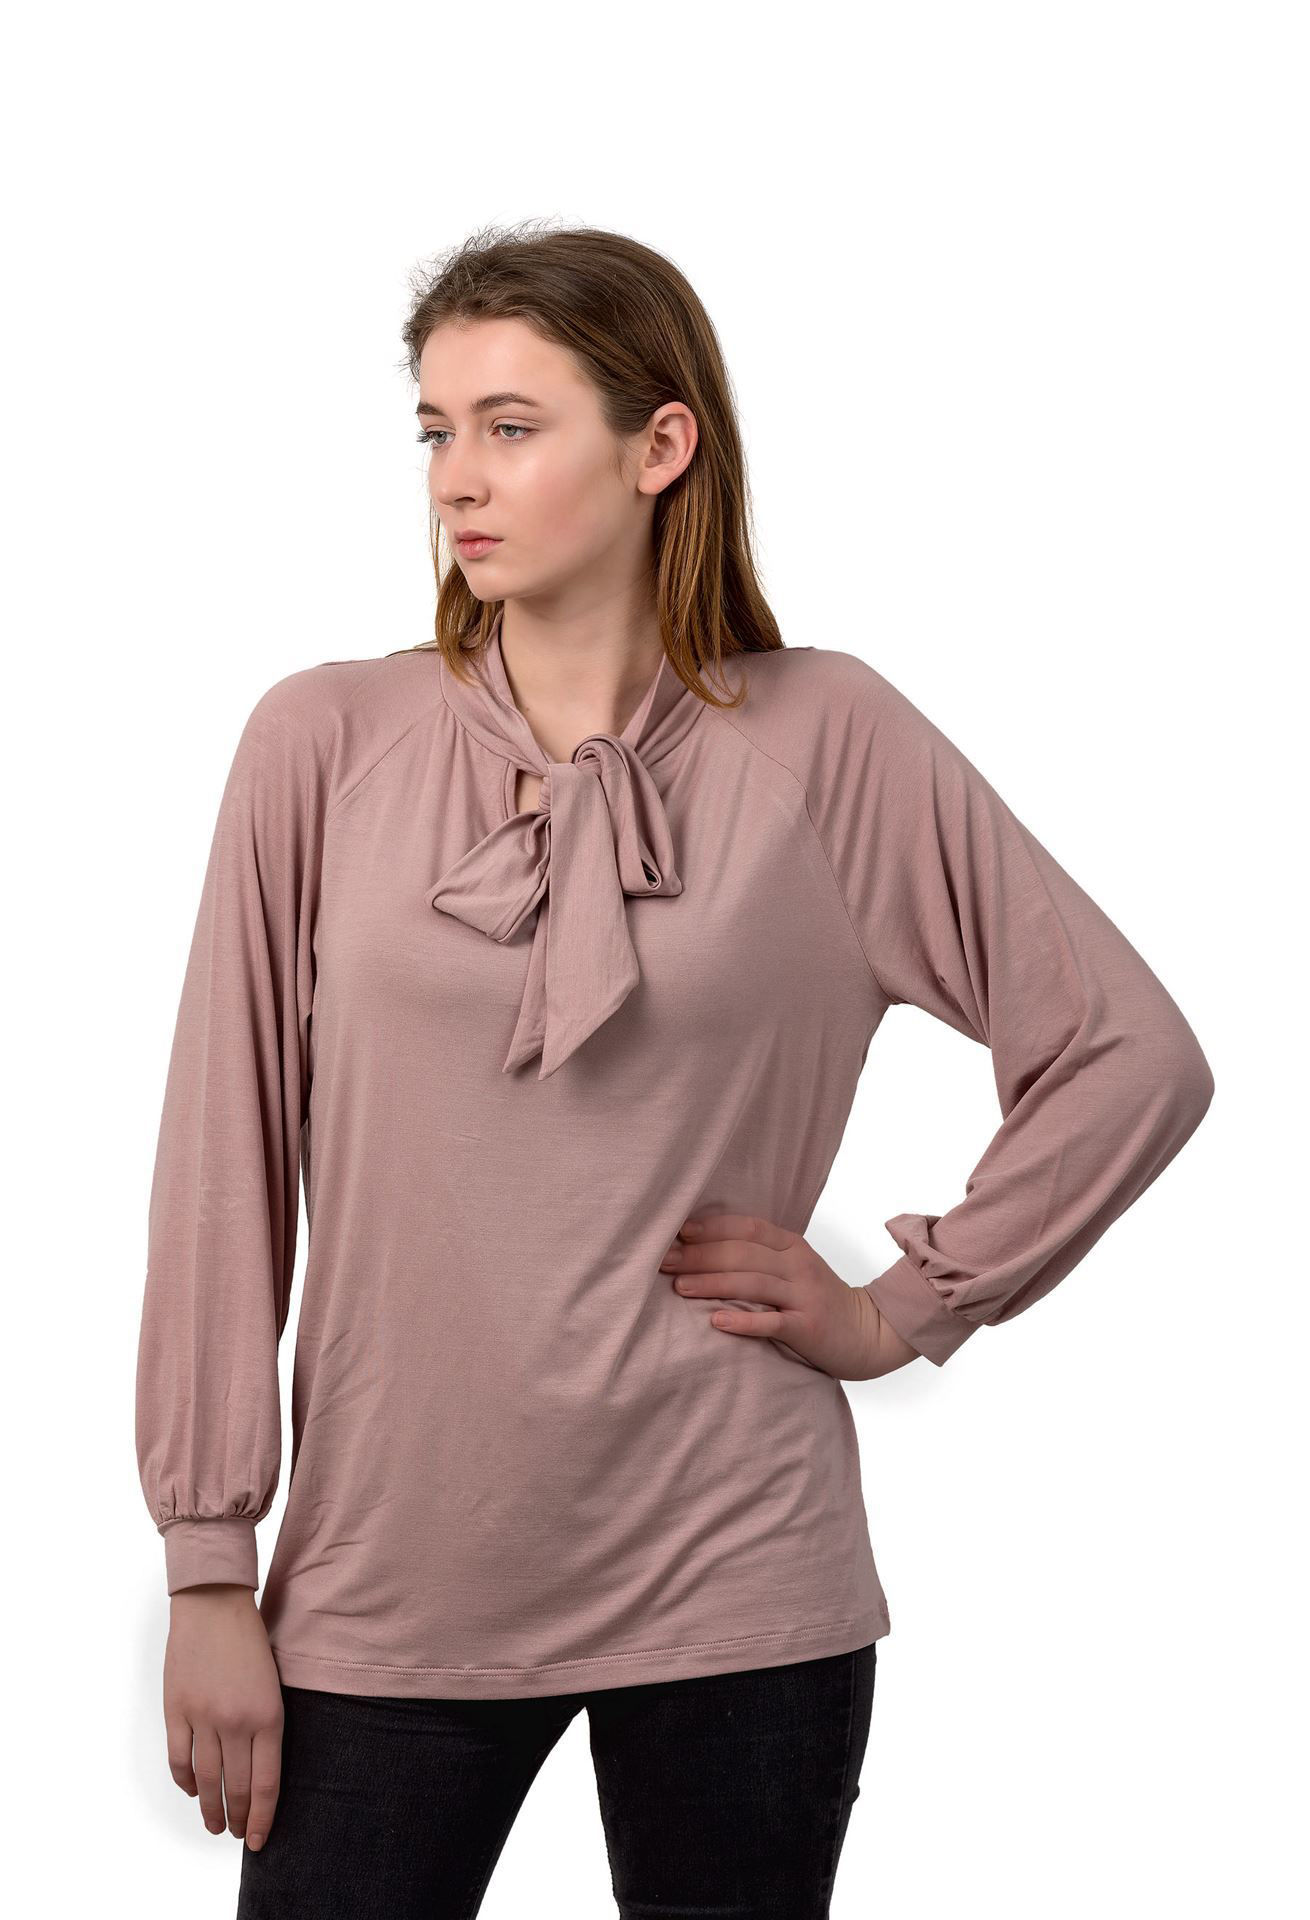 Picture of Women's Long Sleeve Blouse - tying around the neck - Outlet